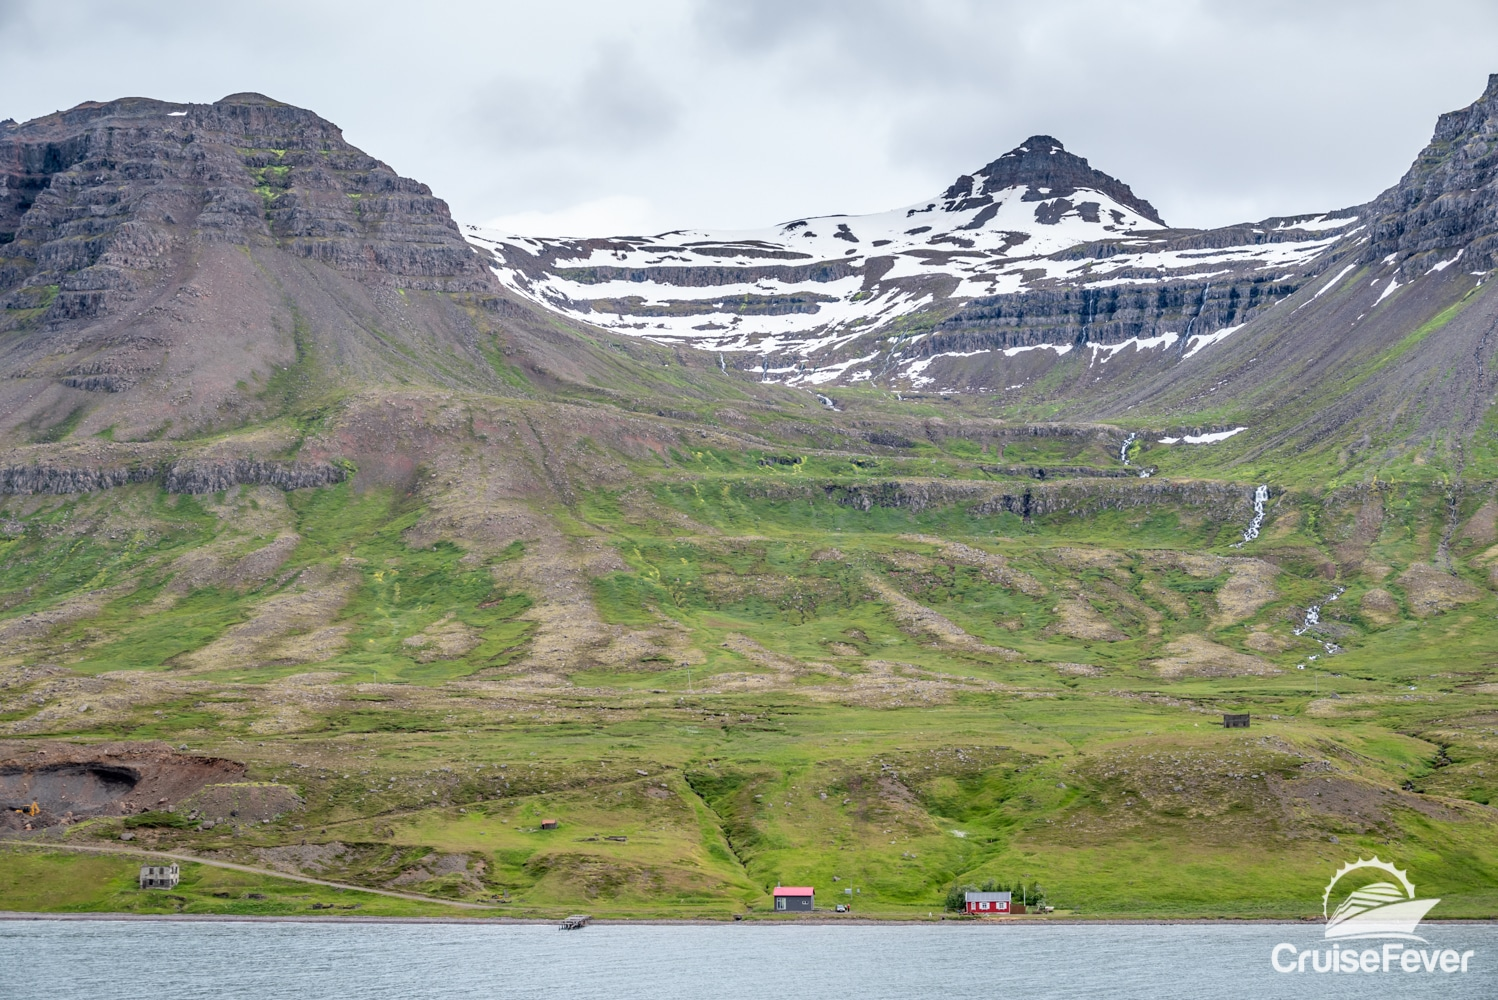 Red house at base of snow capped mountain near Seydisfjördur